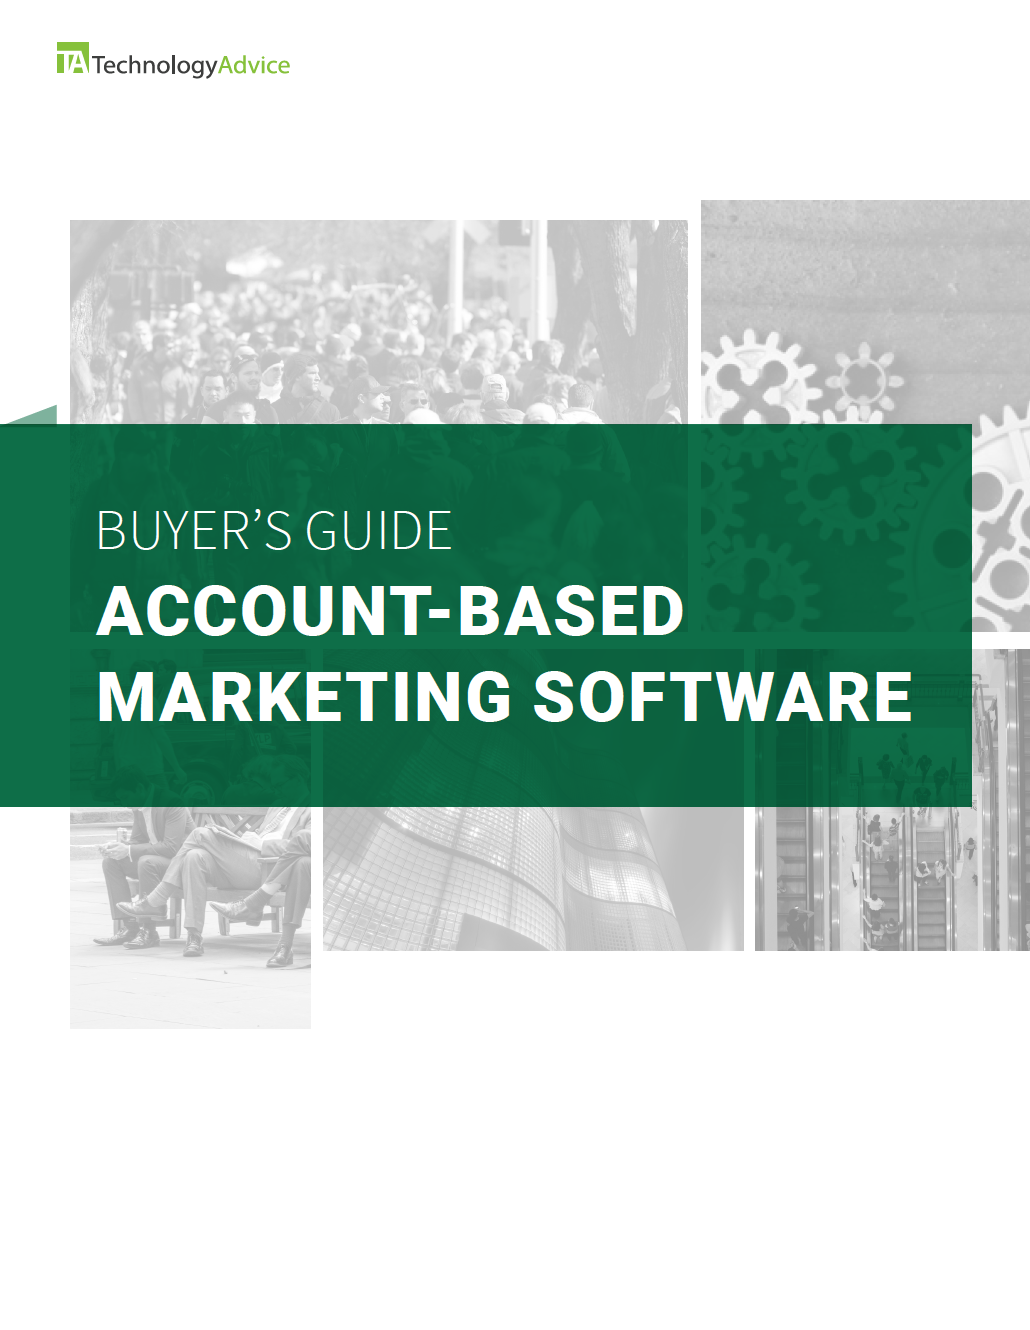 Account-Based Marketing Software Buyer's Guide